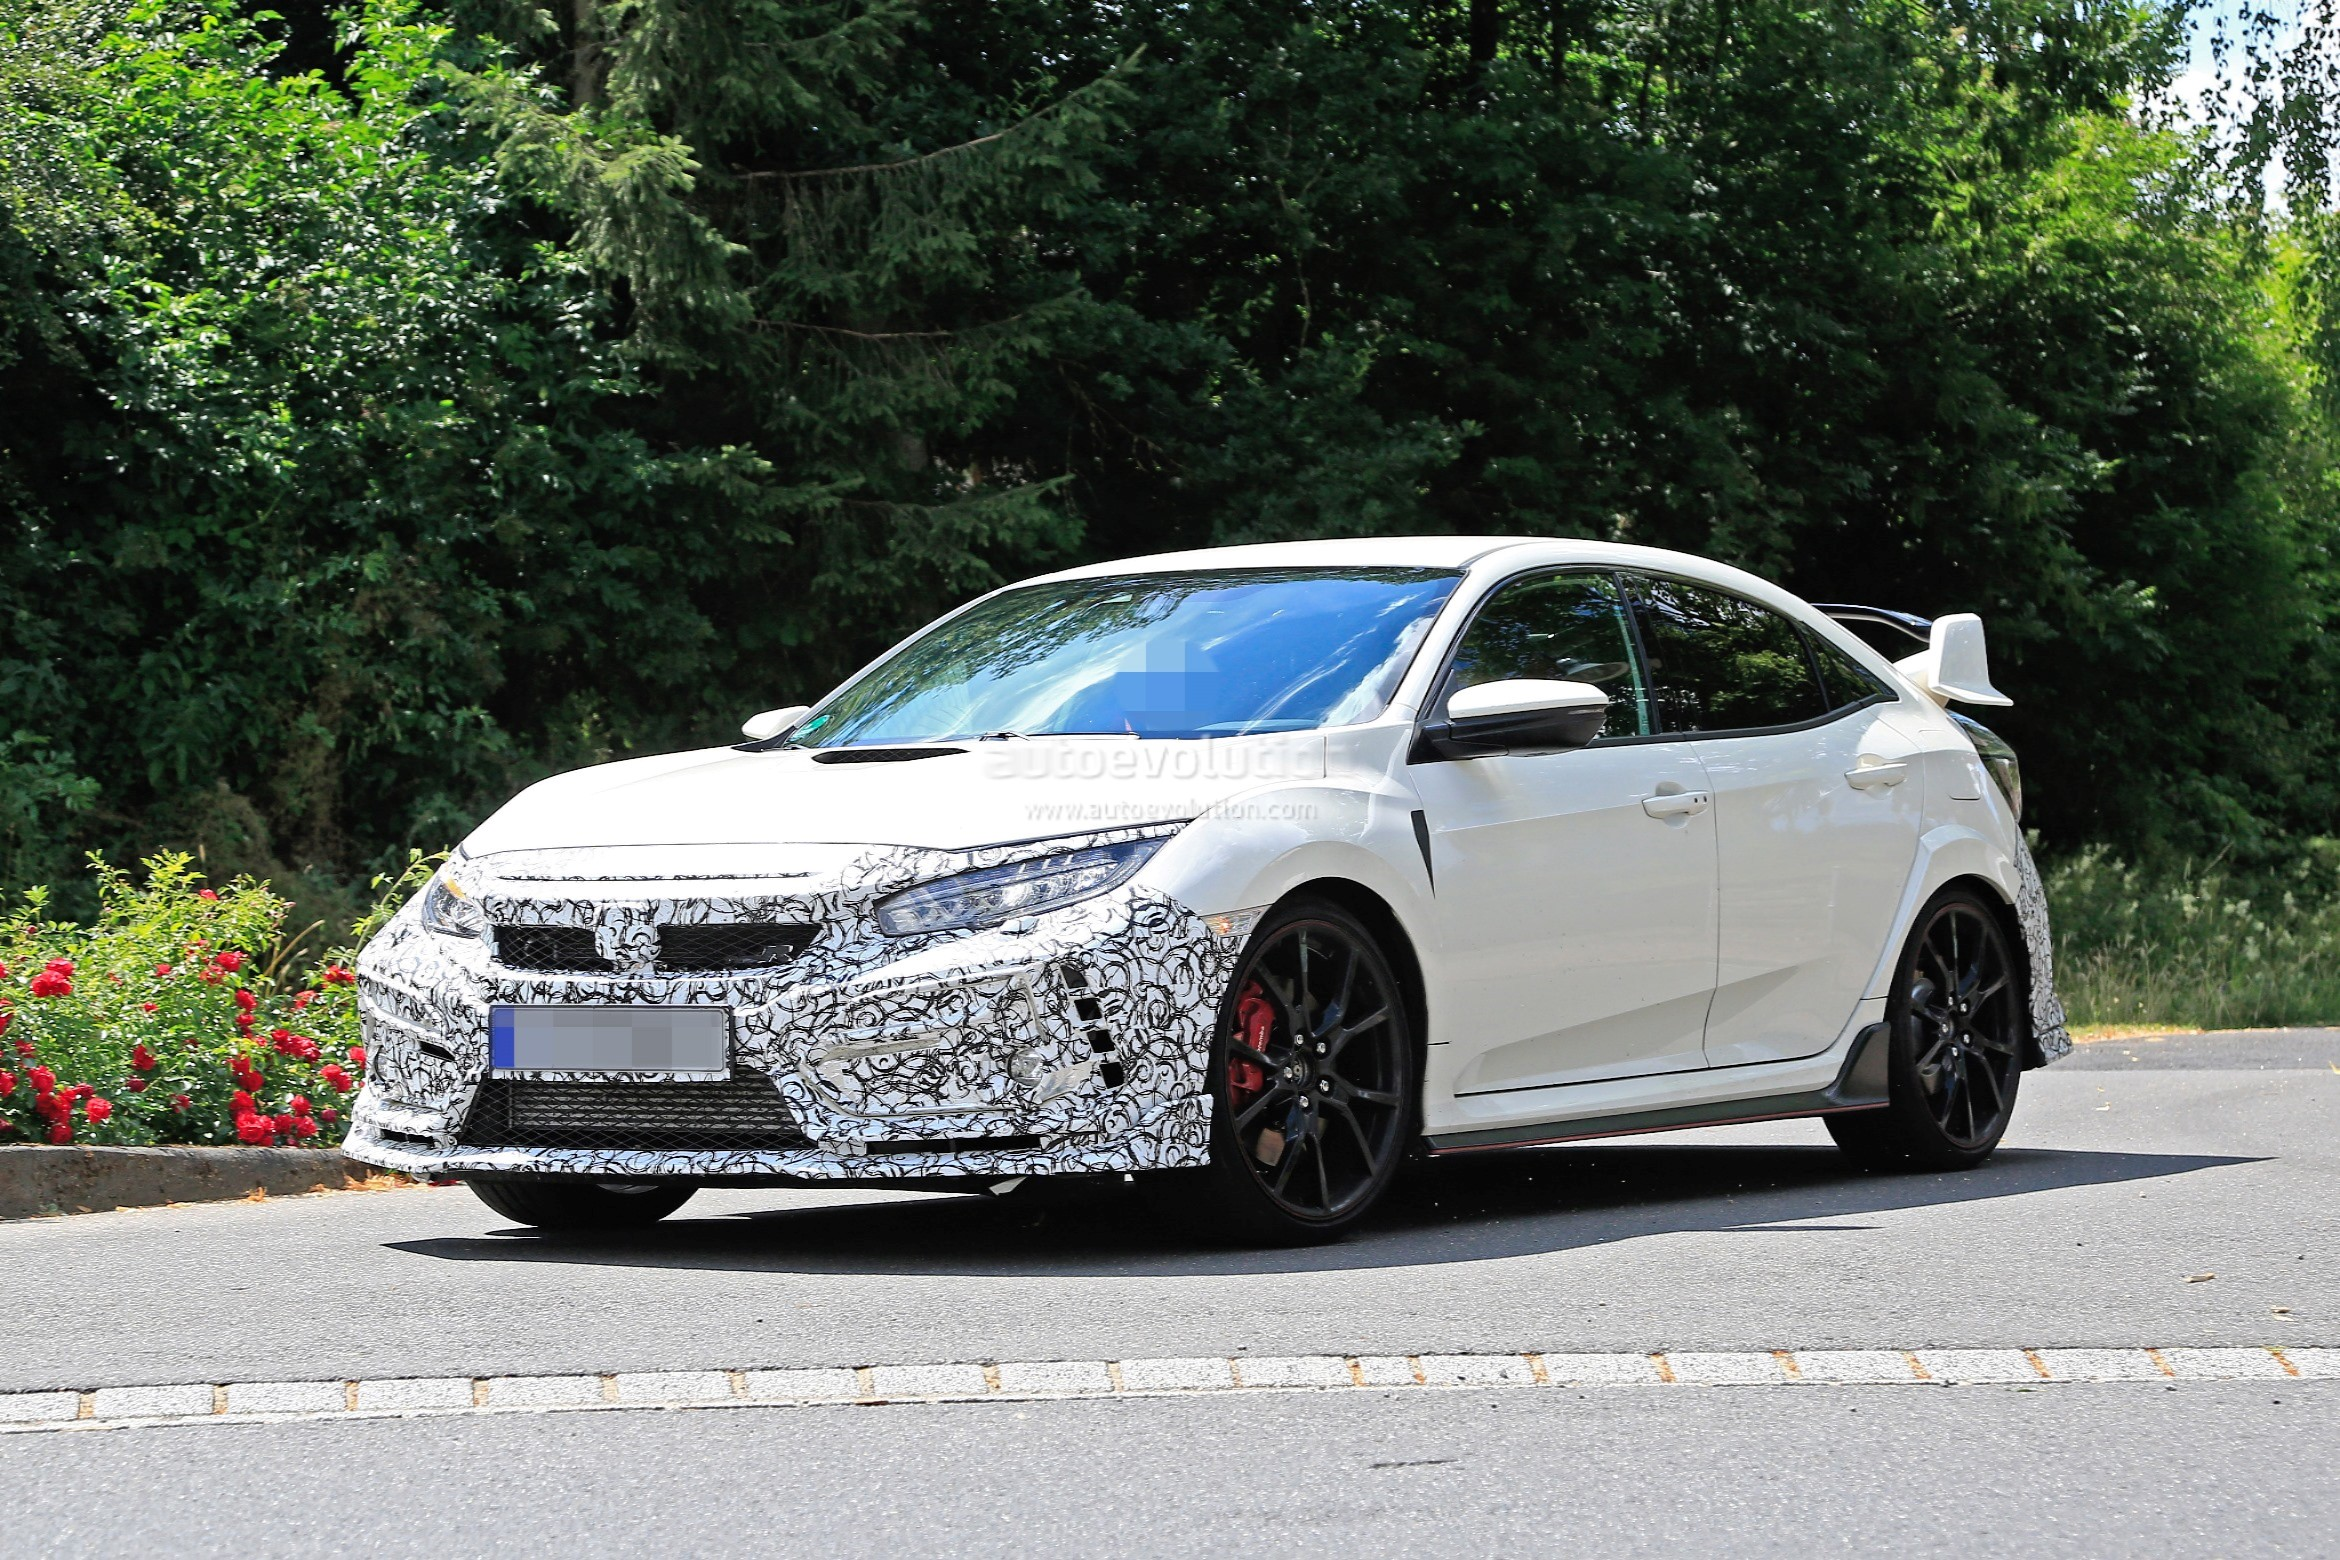 Honda Accord 2018 Spec >> 2019 Honda Civic Type R Spied For the First Time - autoevolution